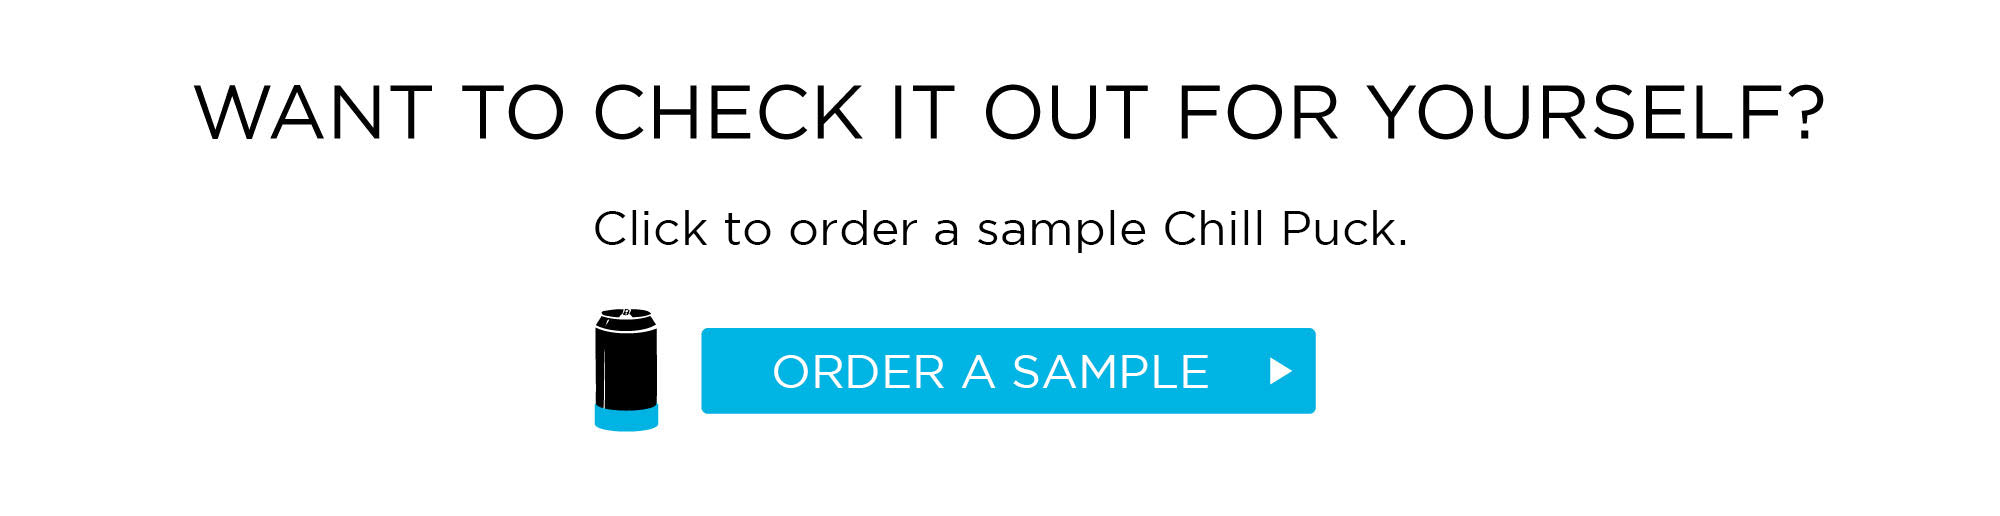 Order a sample Chill Puck